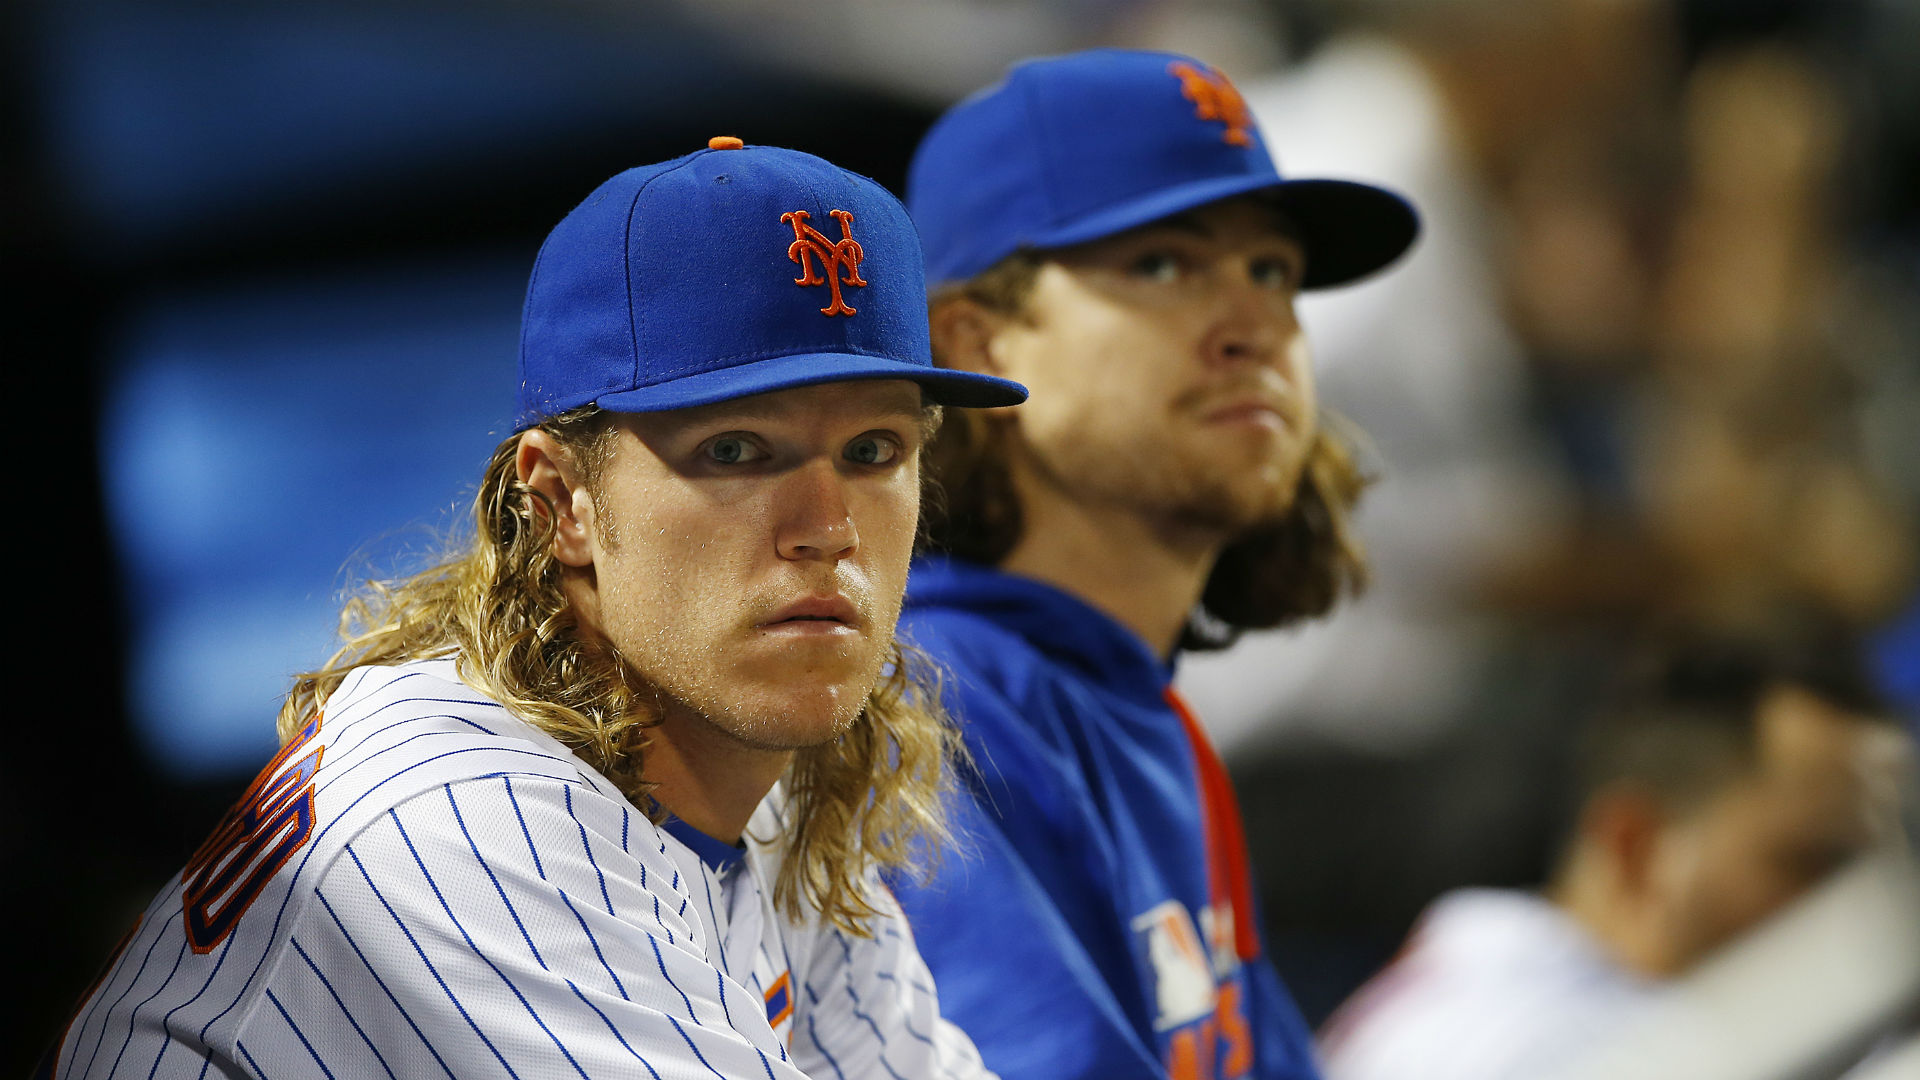 Major League Baseball trade rumors: Mets will consider dealing pitchers Noah Syndergaard, Jacob deGrom